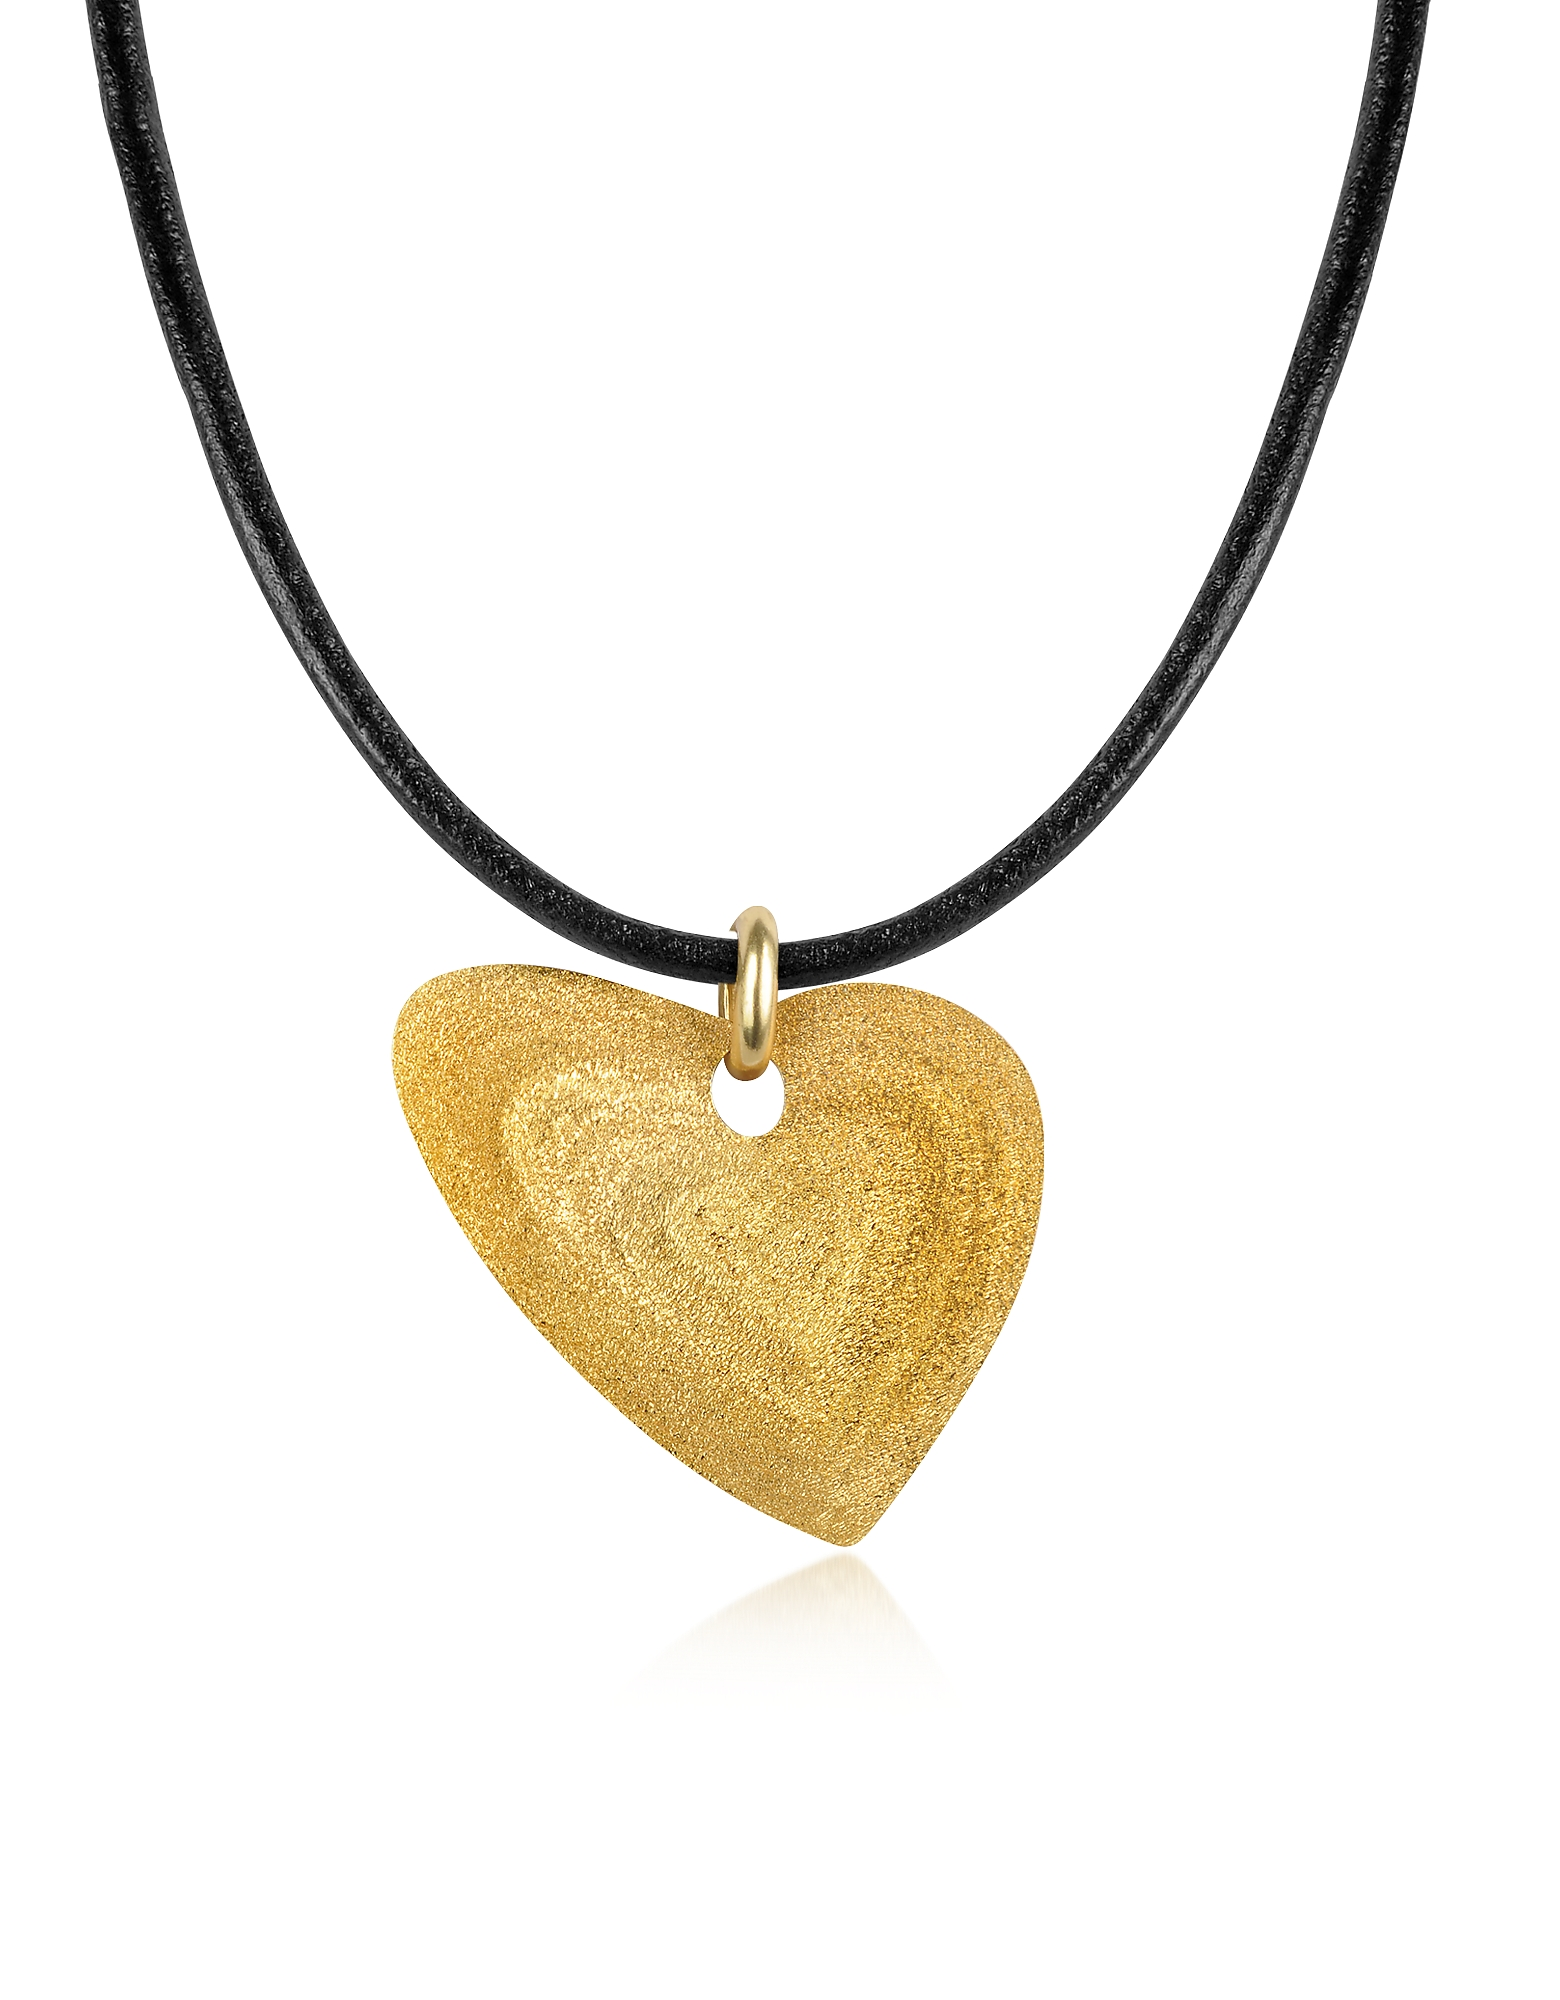 Stefano Patriarchi Necklaces, Etched Golden Silver Small Heart Pendant w/Leather Lace